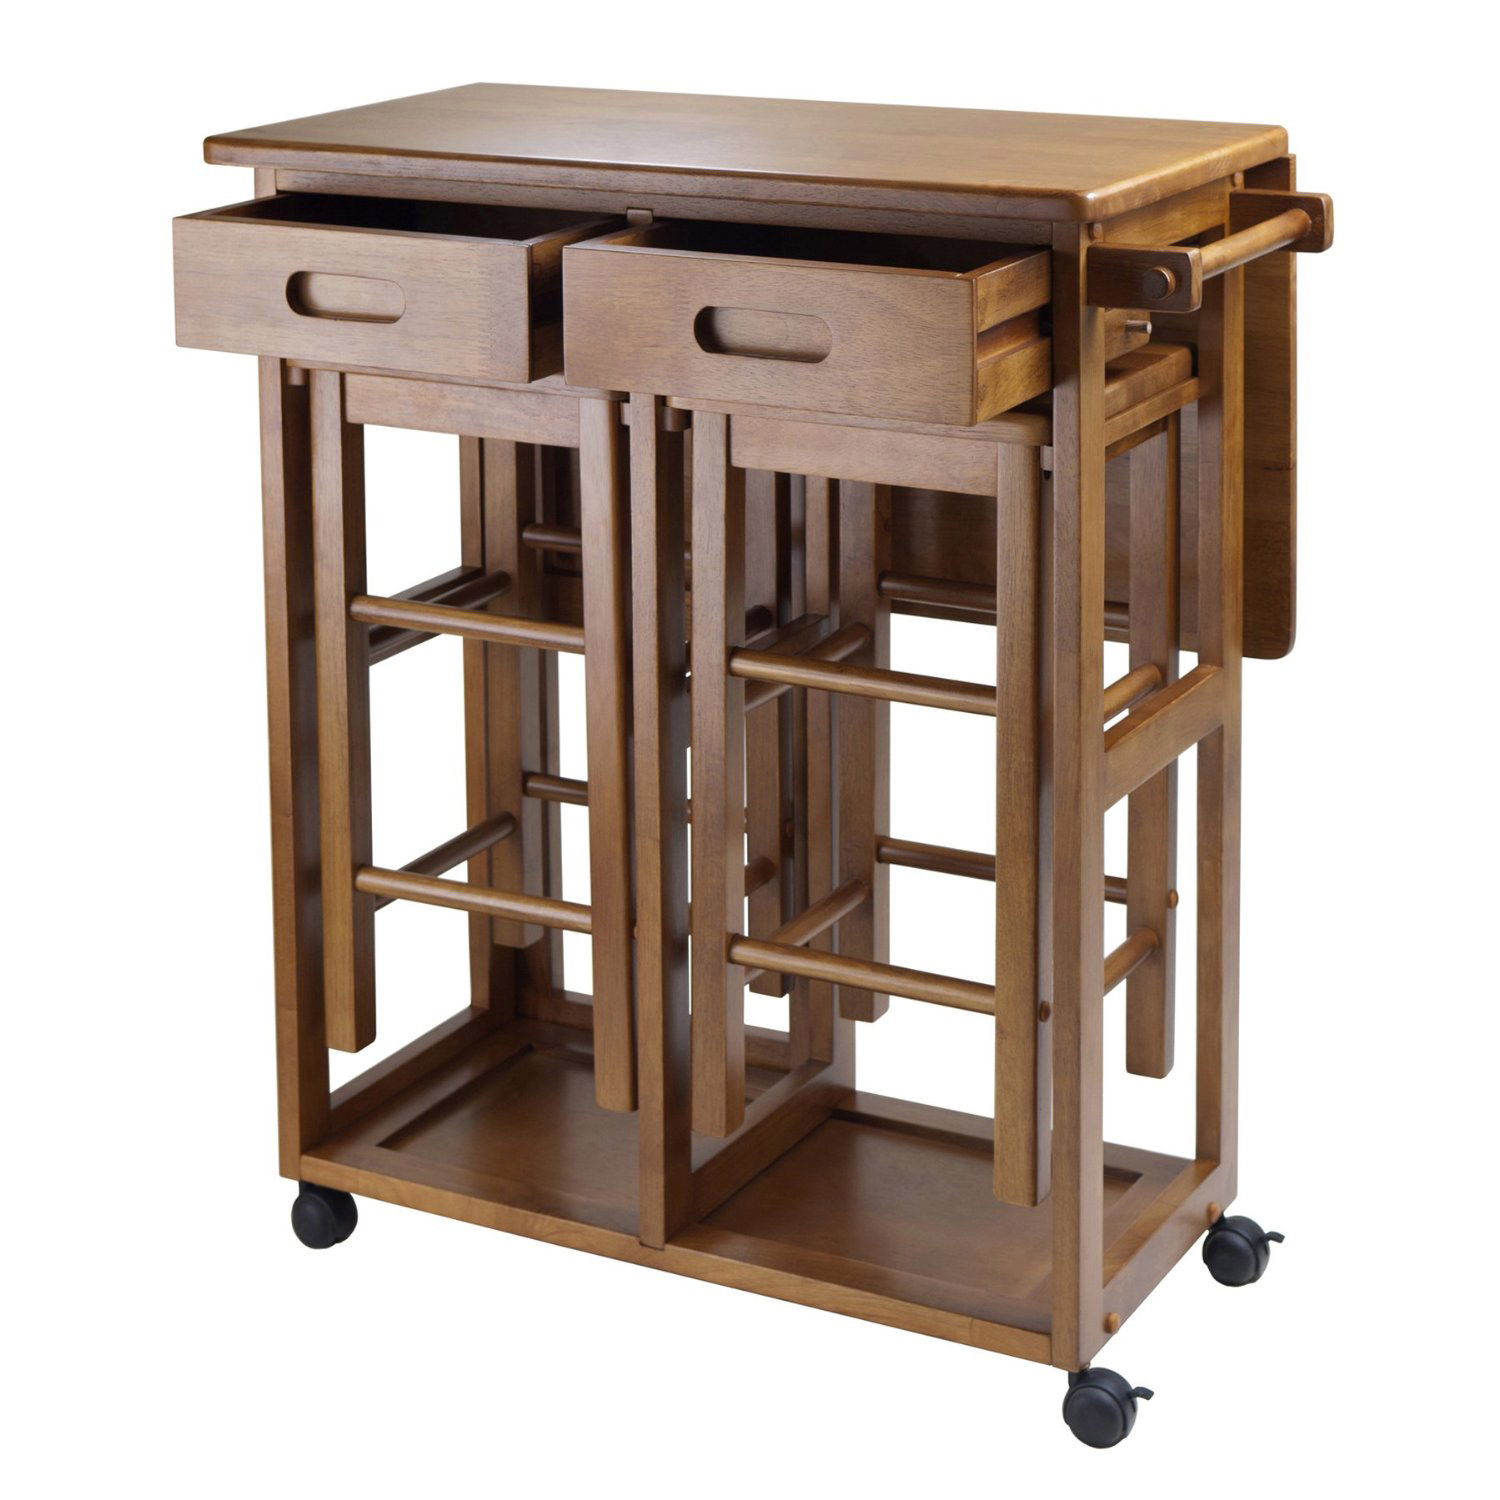 Choose a folding dining table for a small space adorable home - Space saving solutions for small homes set ...